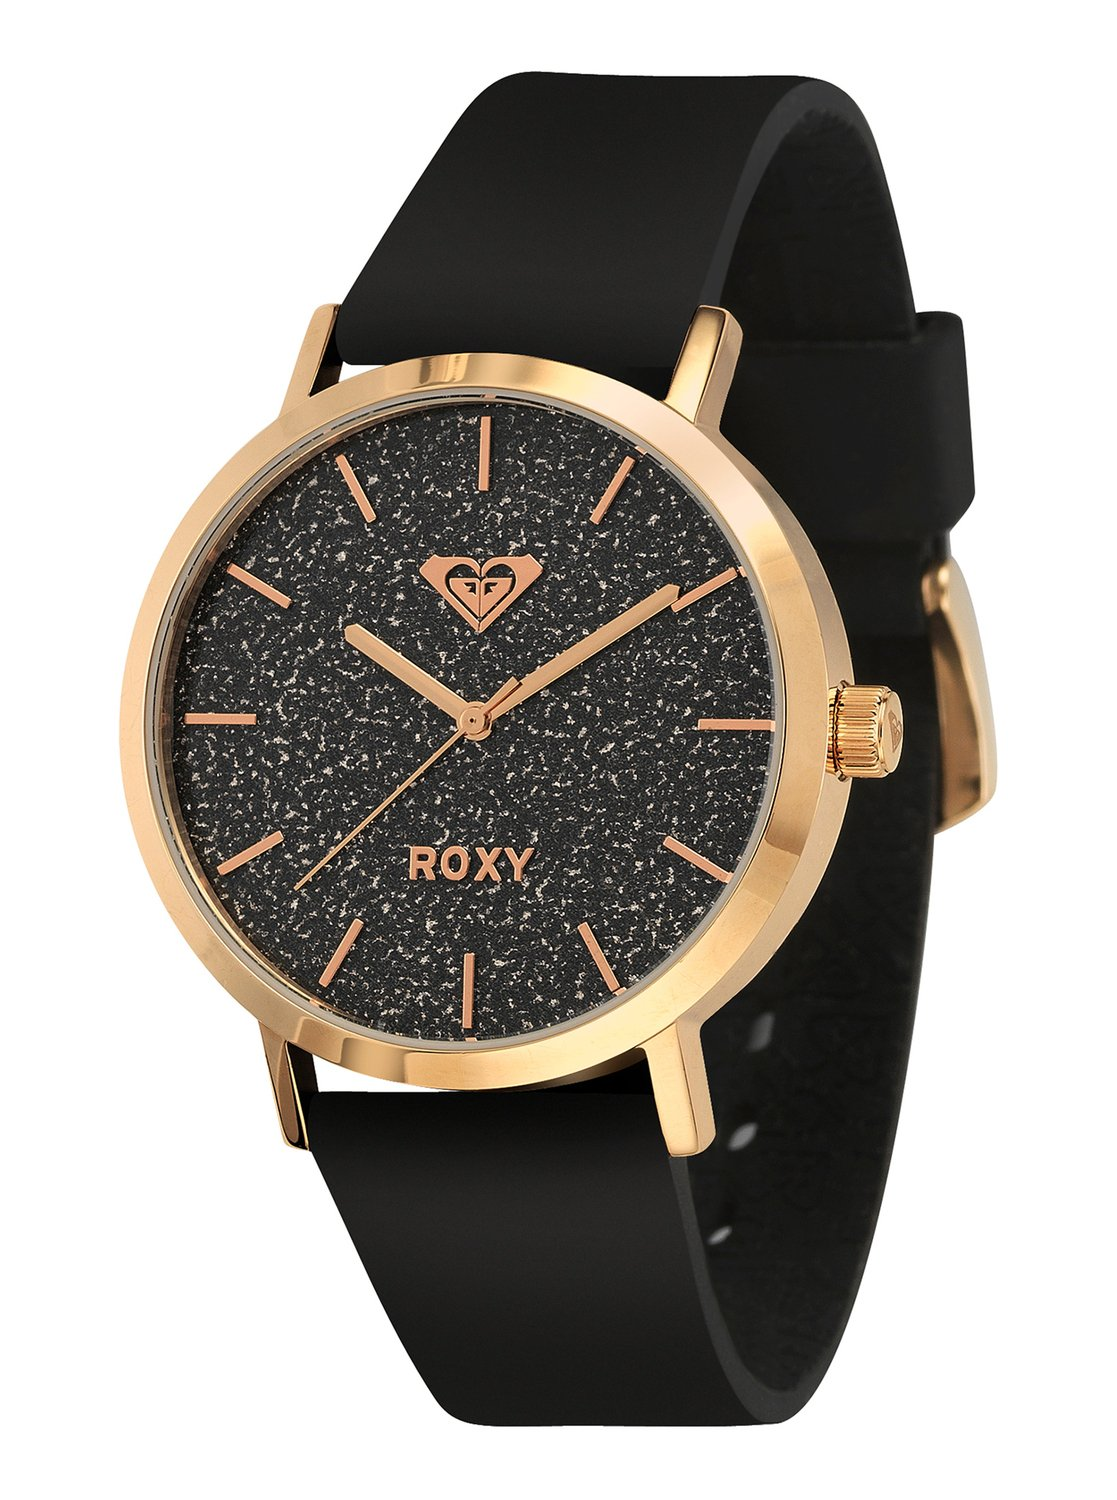 the royal watch rx1008 roxy